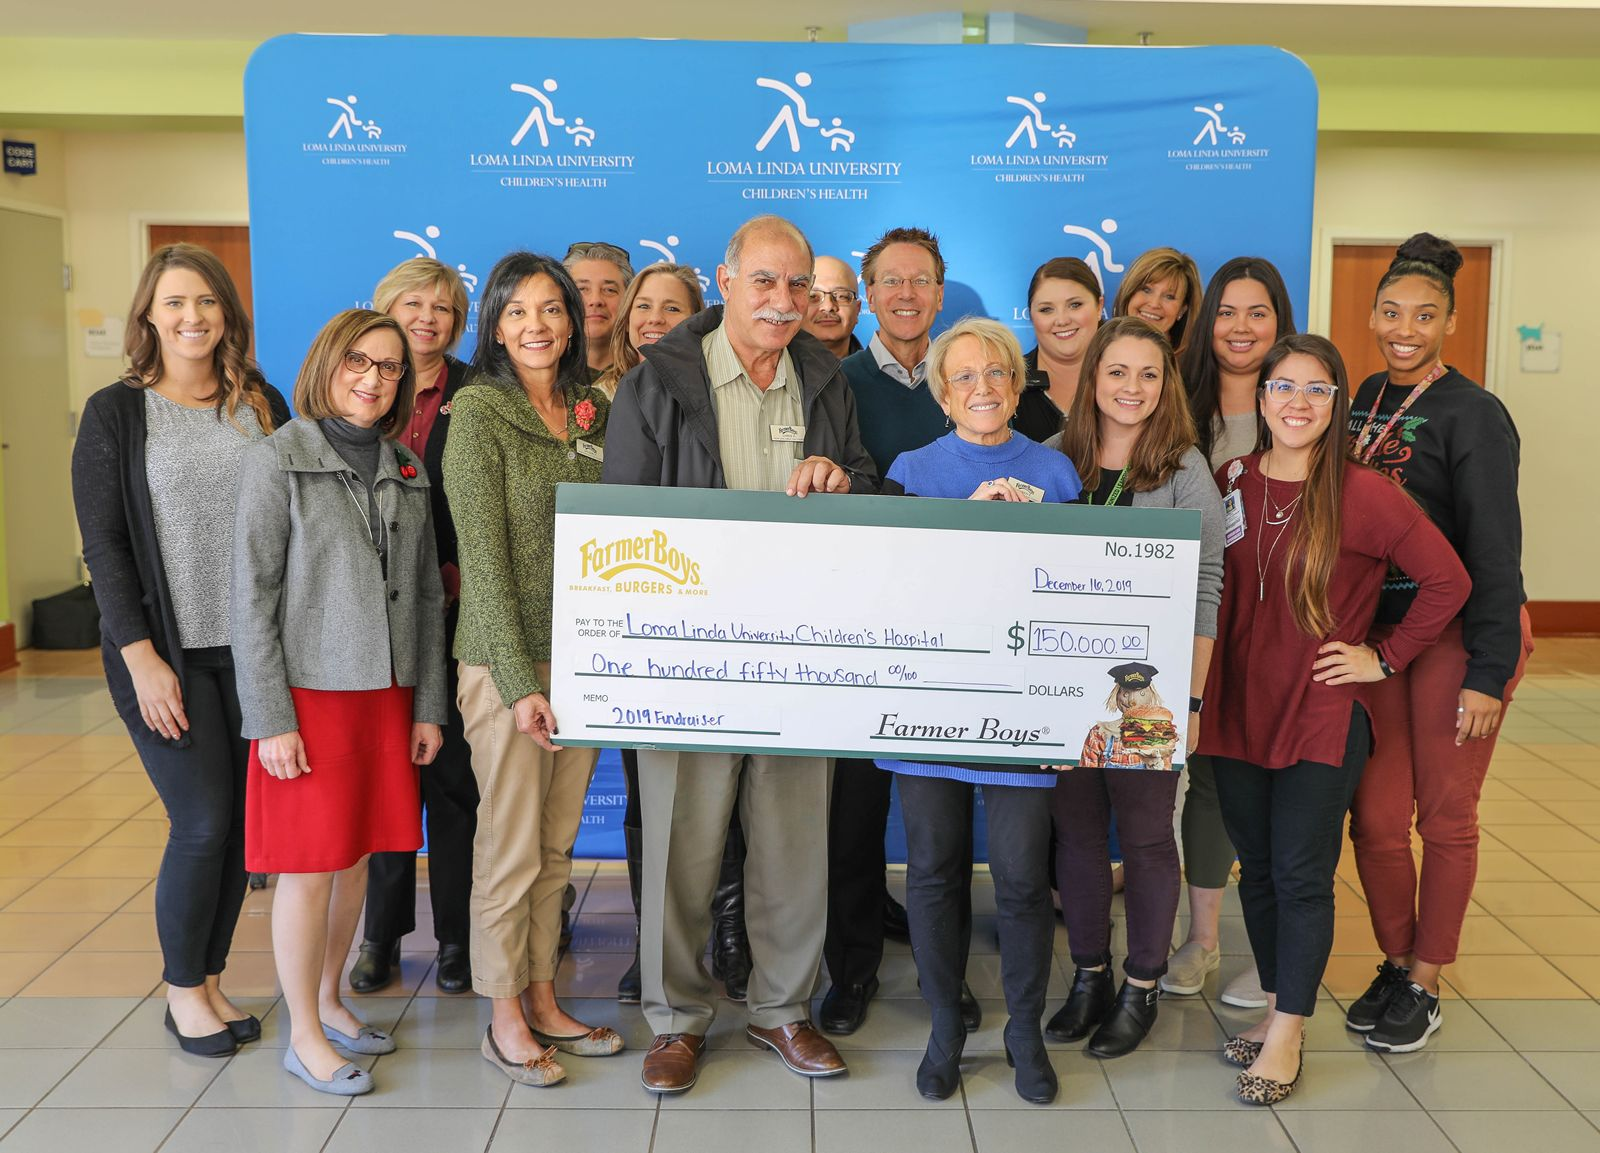 Farmer Boys raised $150,000 for Loma Linda University Children's Hospital (LLUCH) during its 19th annual fundraiser. With the donation, Farmer Boys reached the milestone of more than $1,000,000 donated to LLUCH since first partnering with the hospital in 2000.